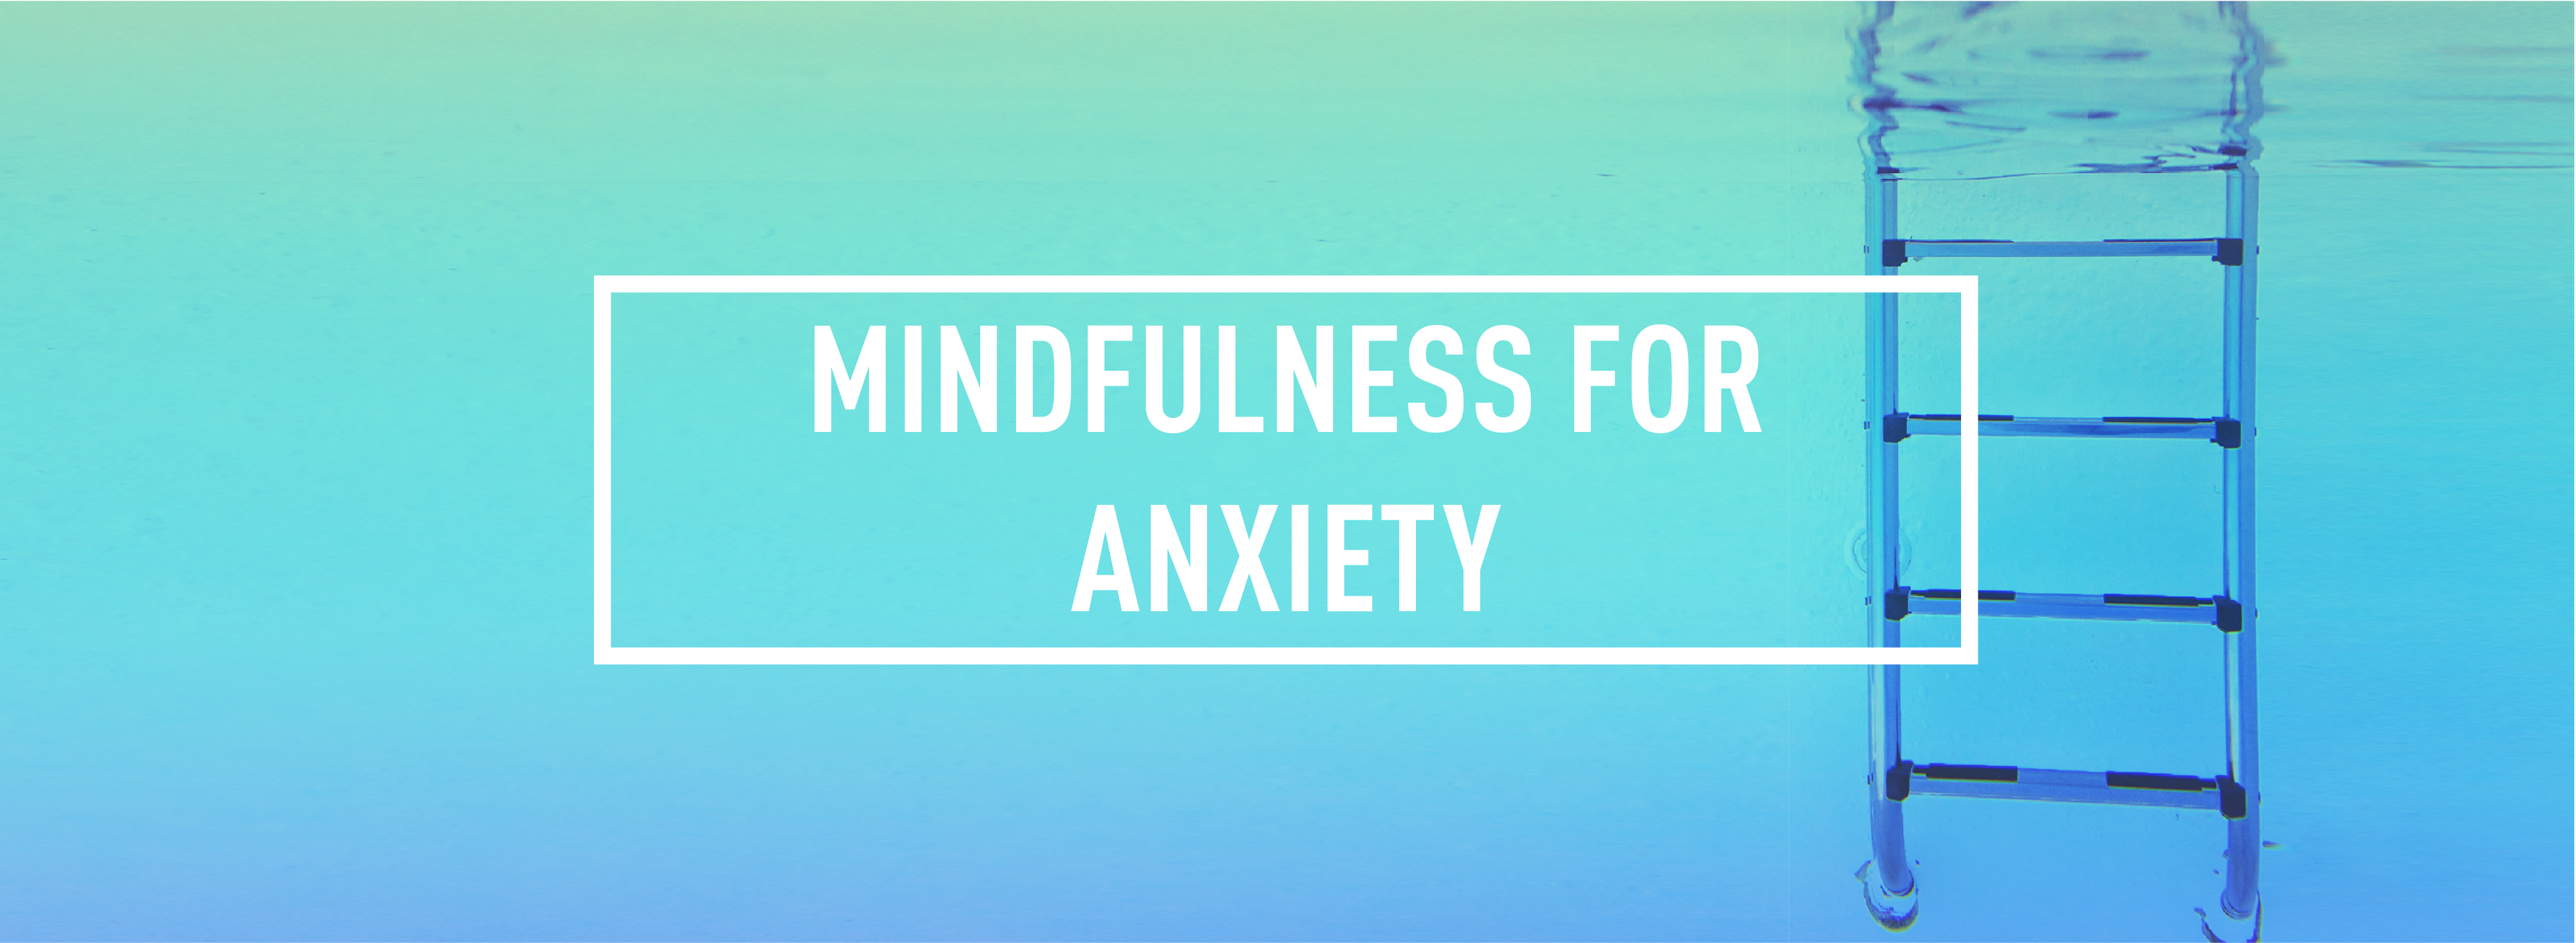 MINDFULNESS FOR ANXIETY_Webpage Header